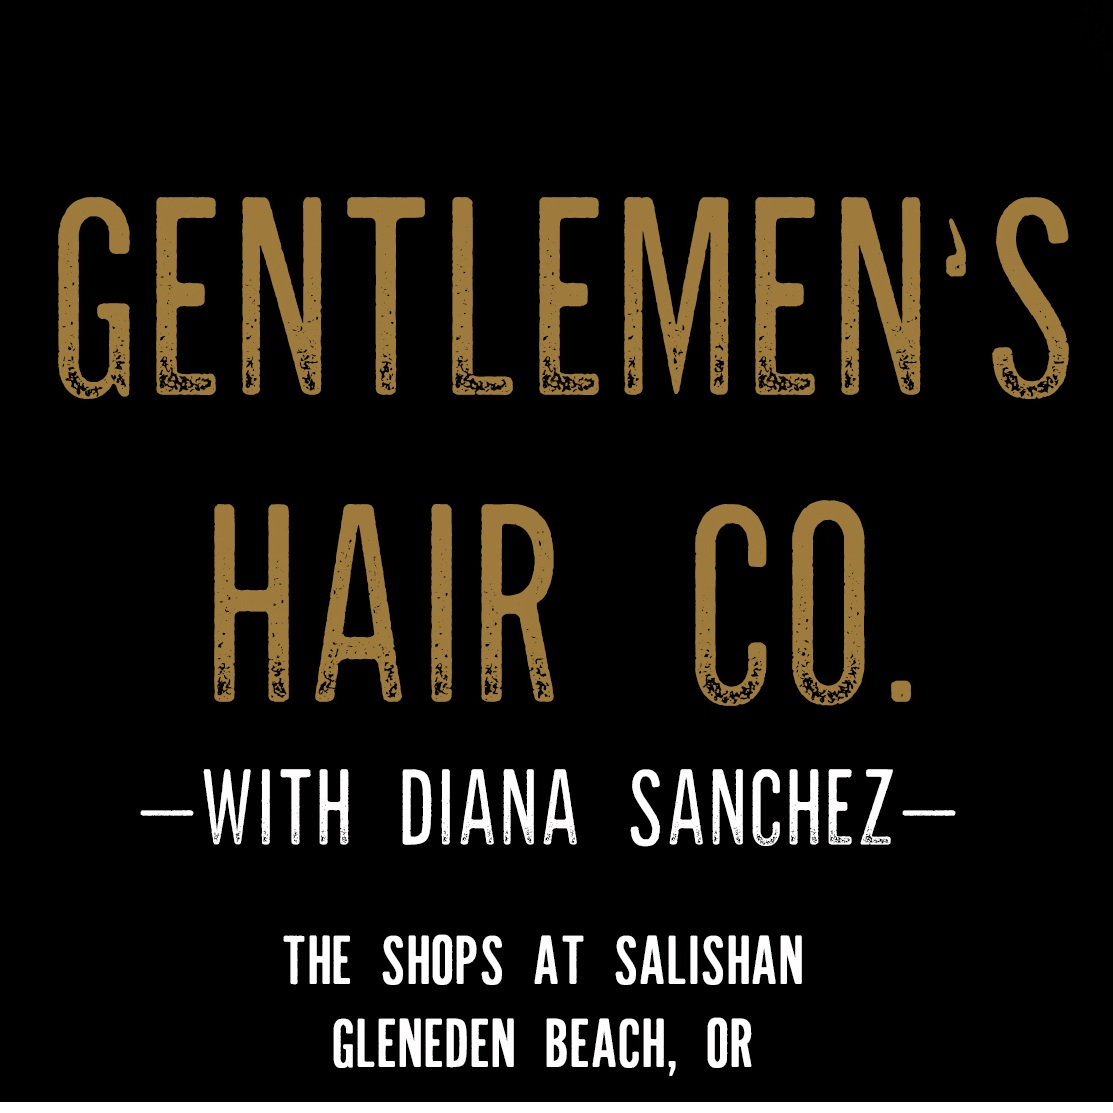 Gentlemen's Hair Co. - We are a small men's hair shop located on the Oregon Coast in Gleneden Beach, OR.